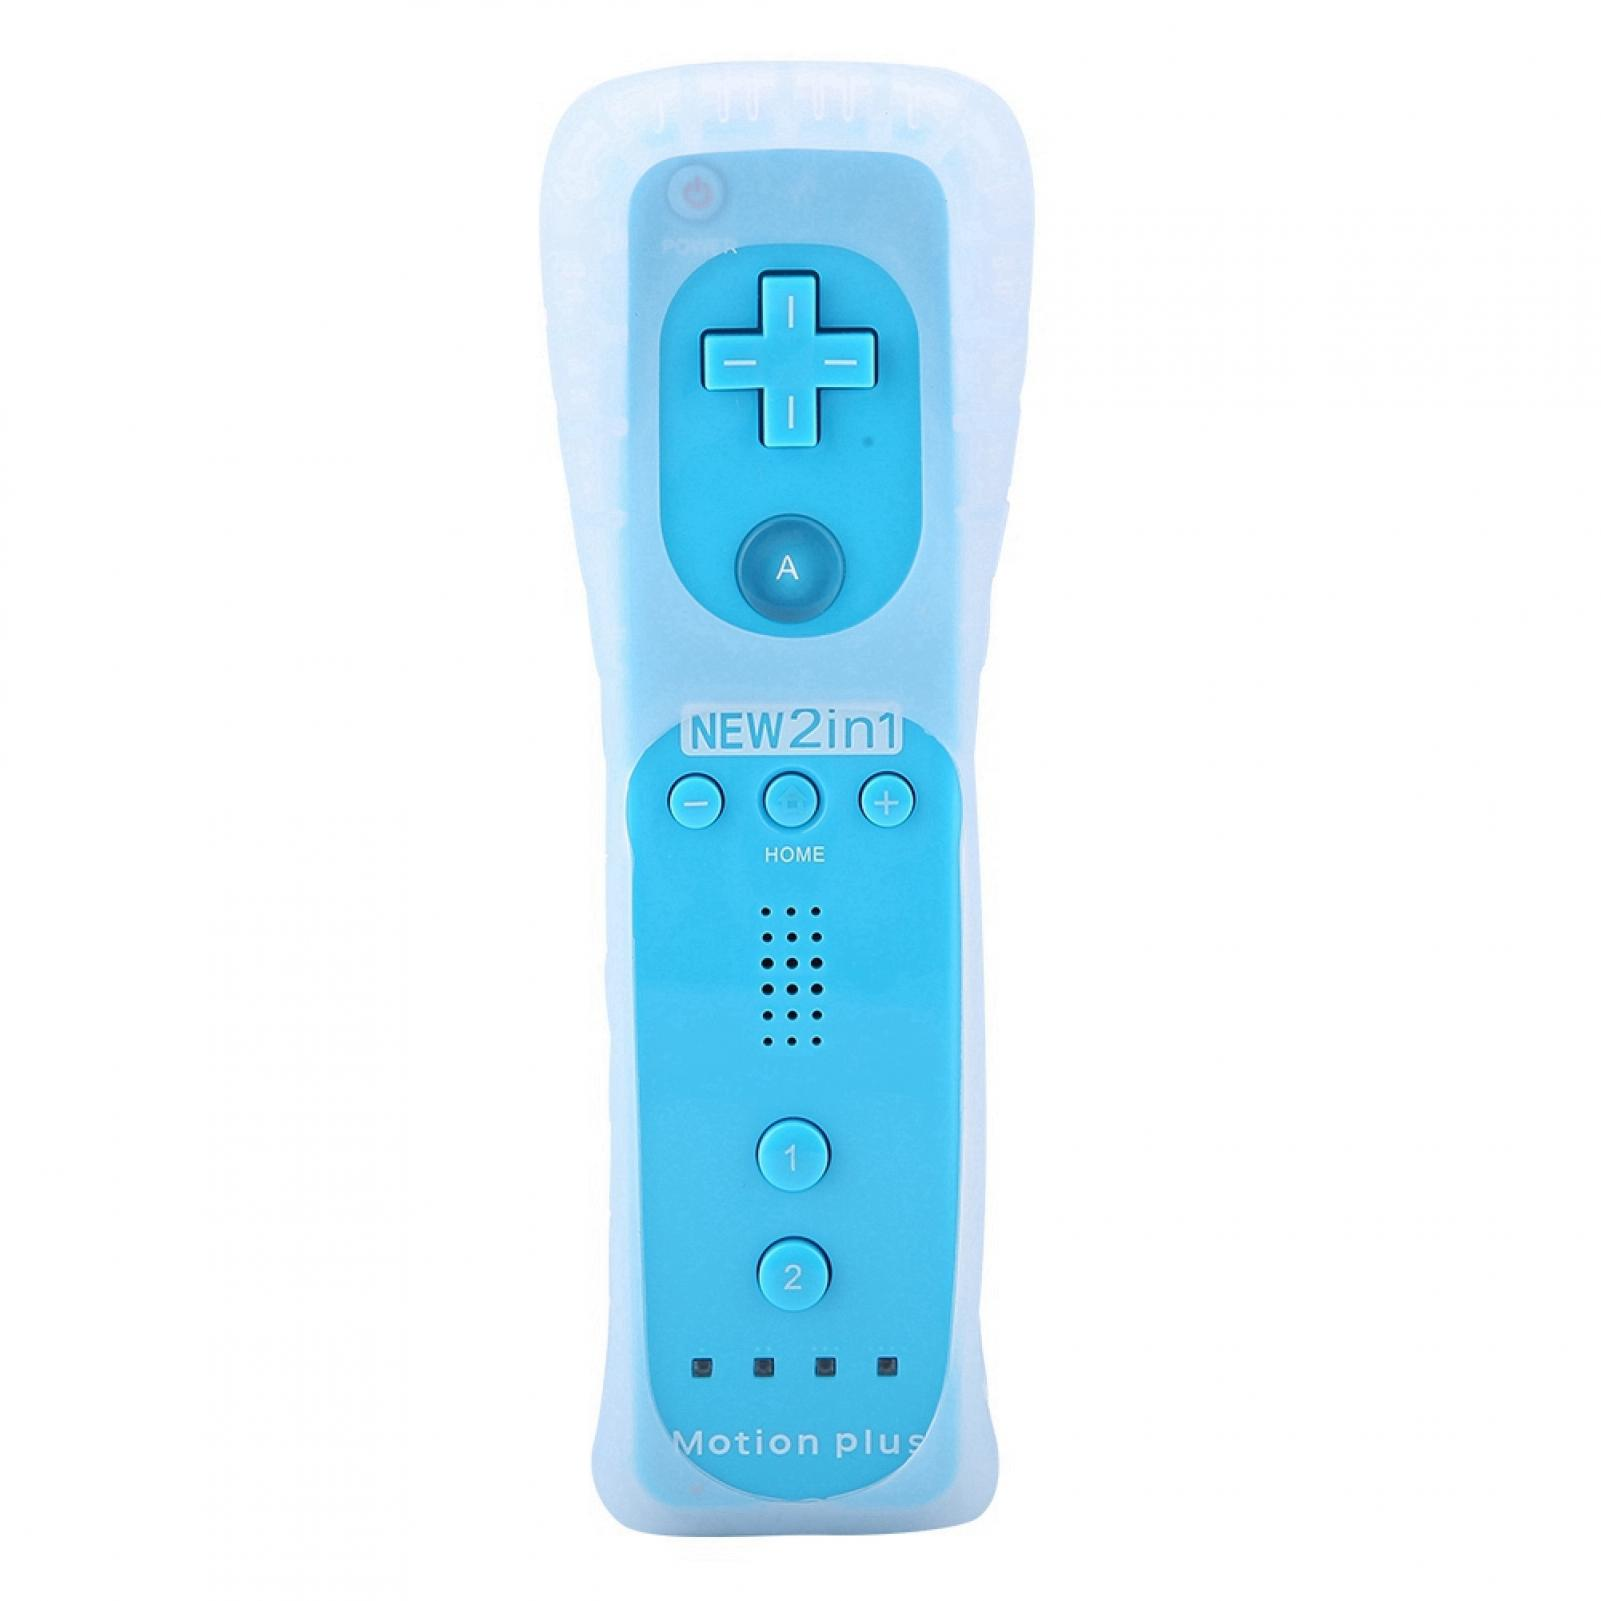 Built-in-Motion-Plus-Remote-Nunchuck-Controller-Cover-Case-for-Nintendo-Wii-WiiU miniature 55